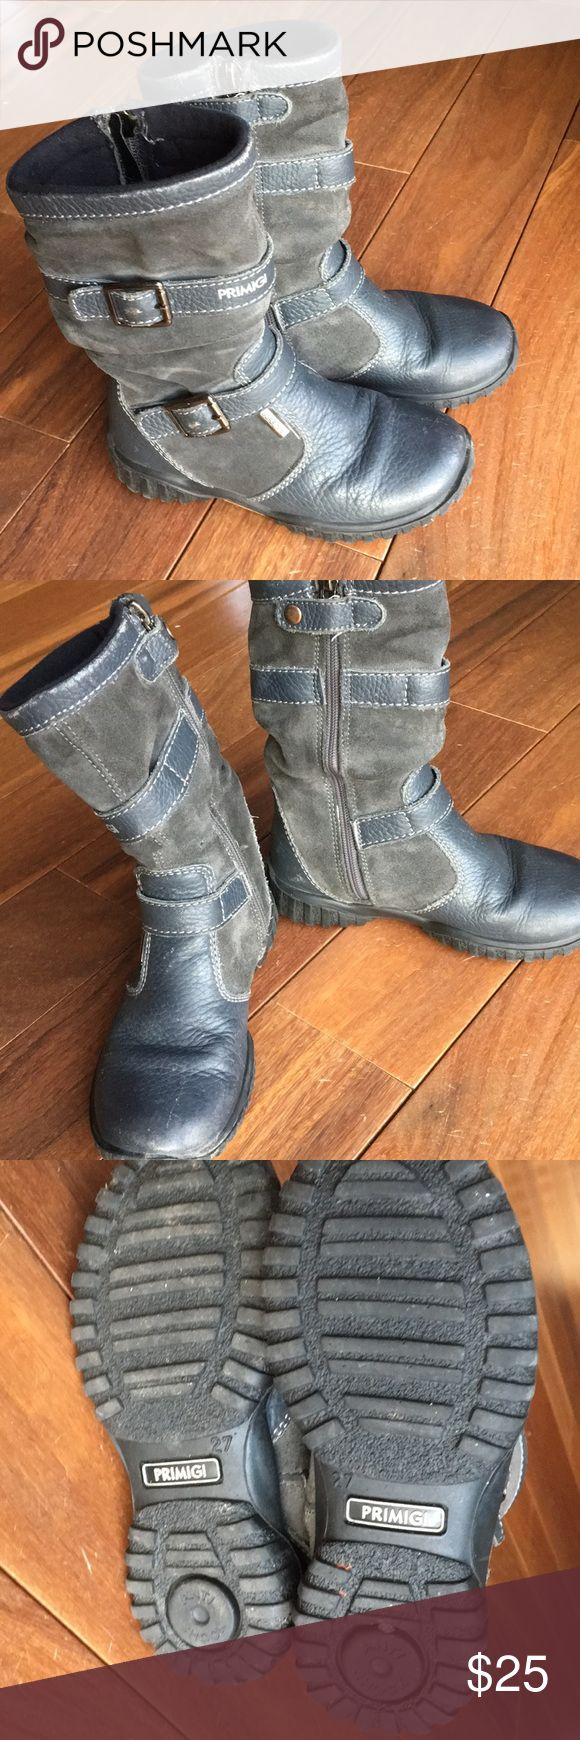 Primigi Girls Toddler GORE TEX Leather Boots EUC Gore Tex Leather Boots. European size 27 (US Size 9/10).  Waterproof, darling and warm! Primigi Shoes Boots